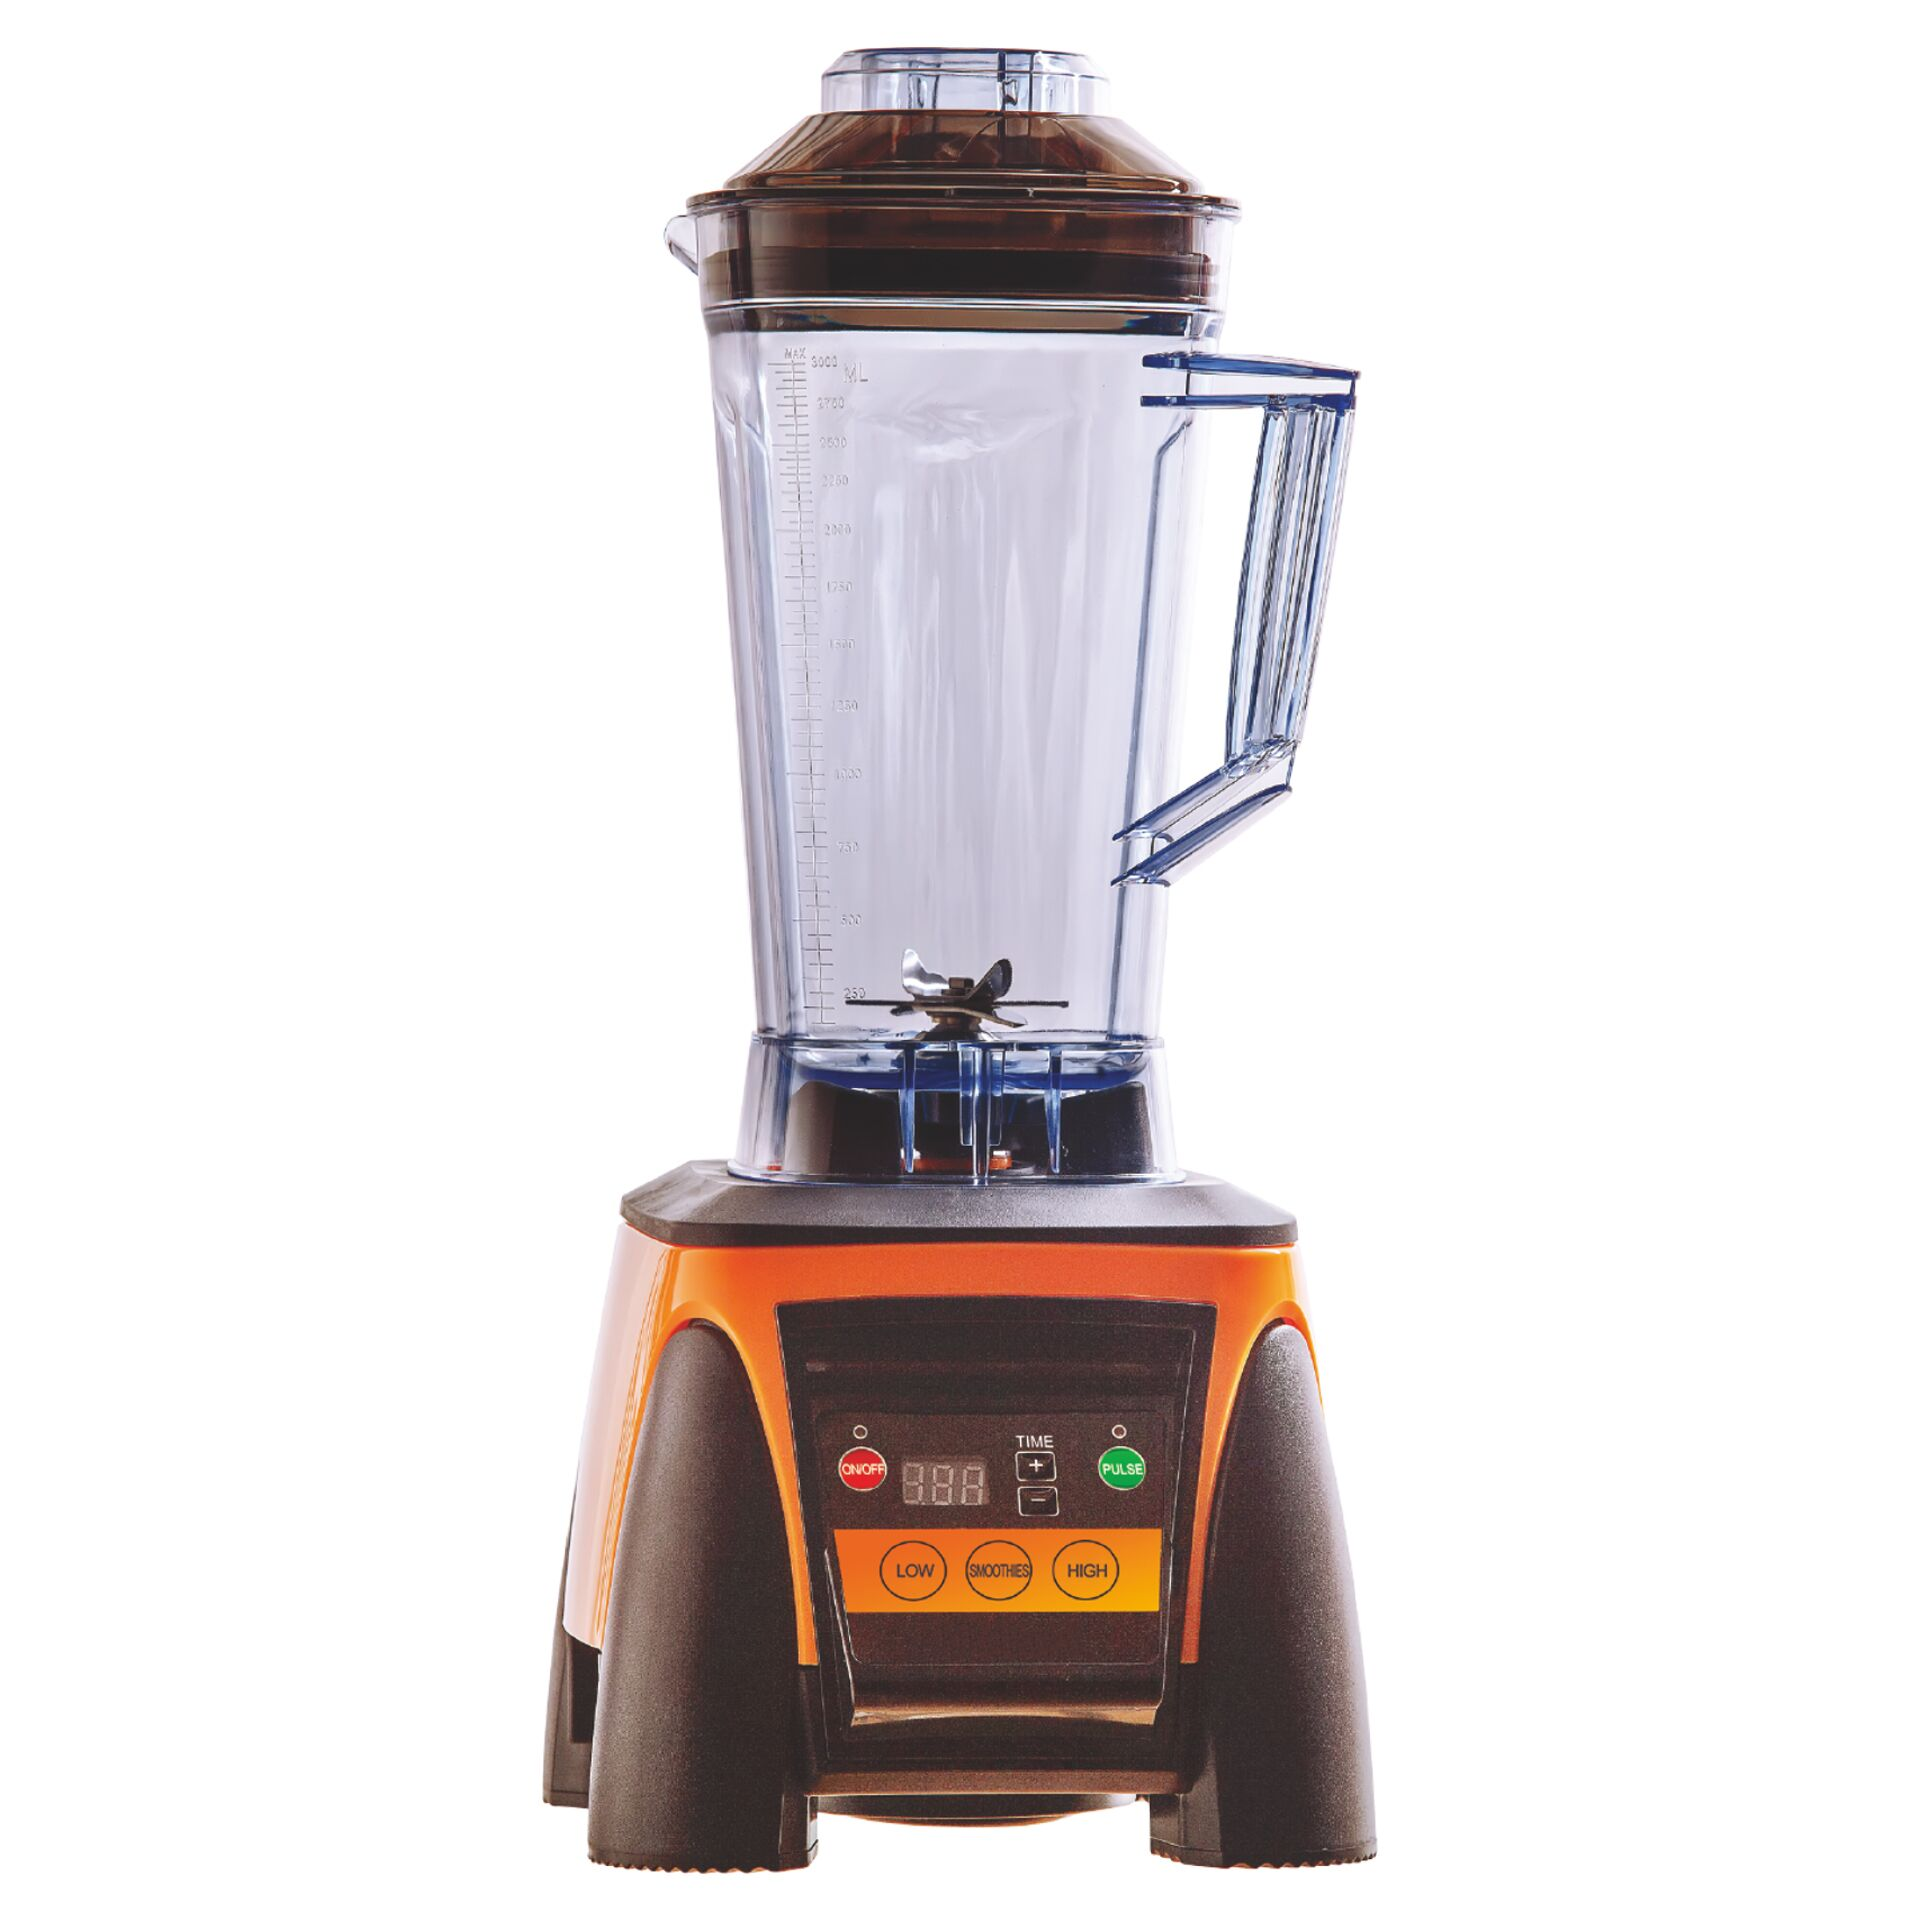 Flying new large commercial blenders